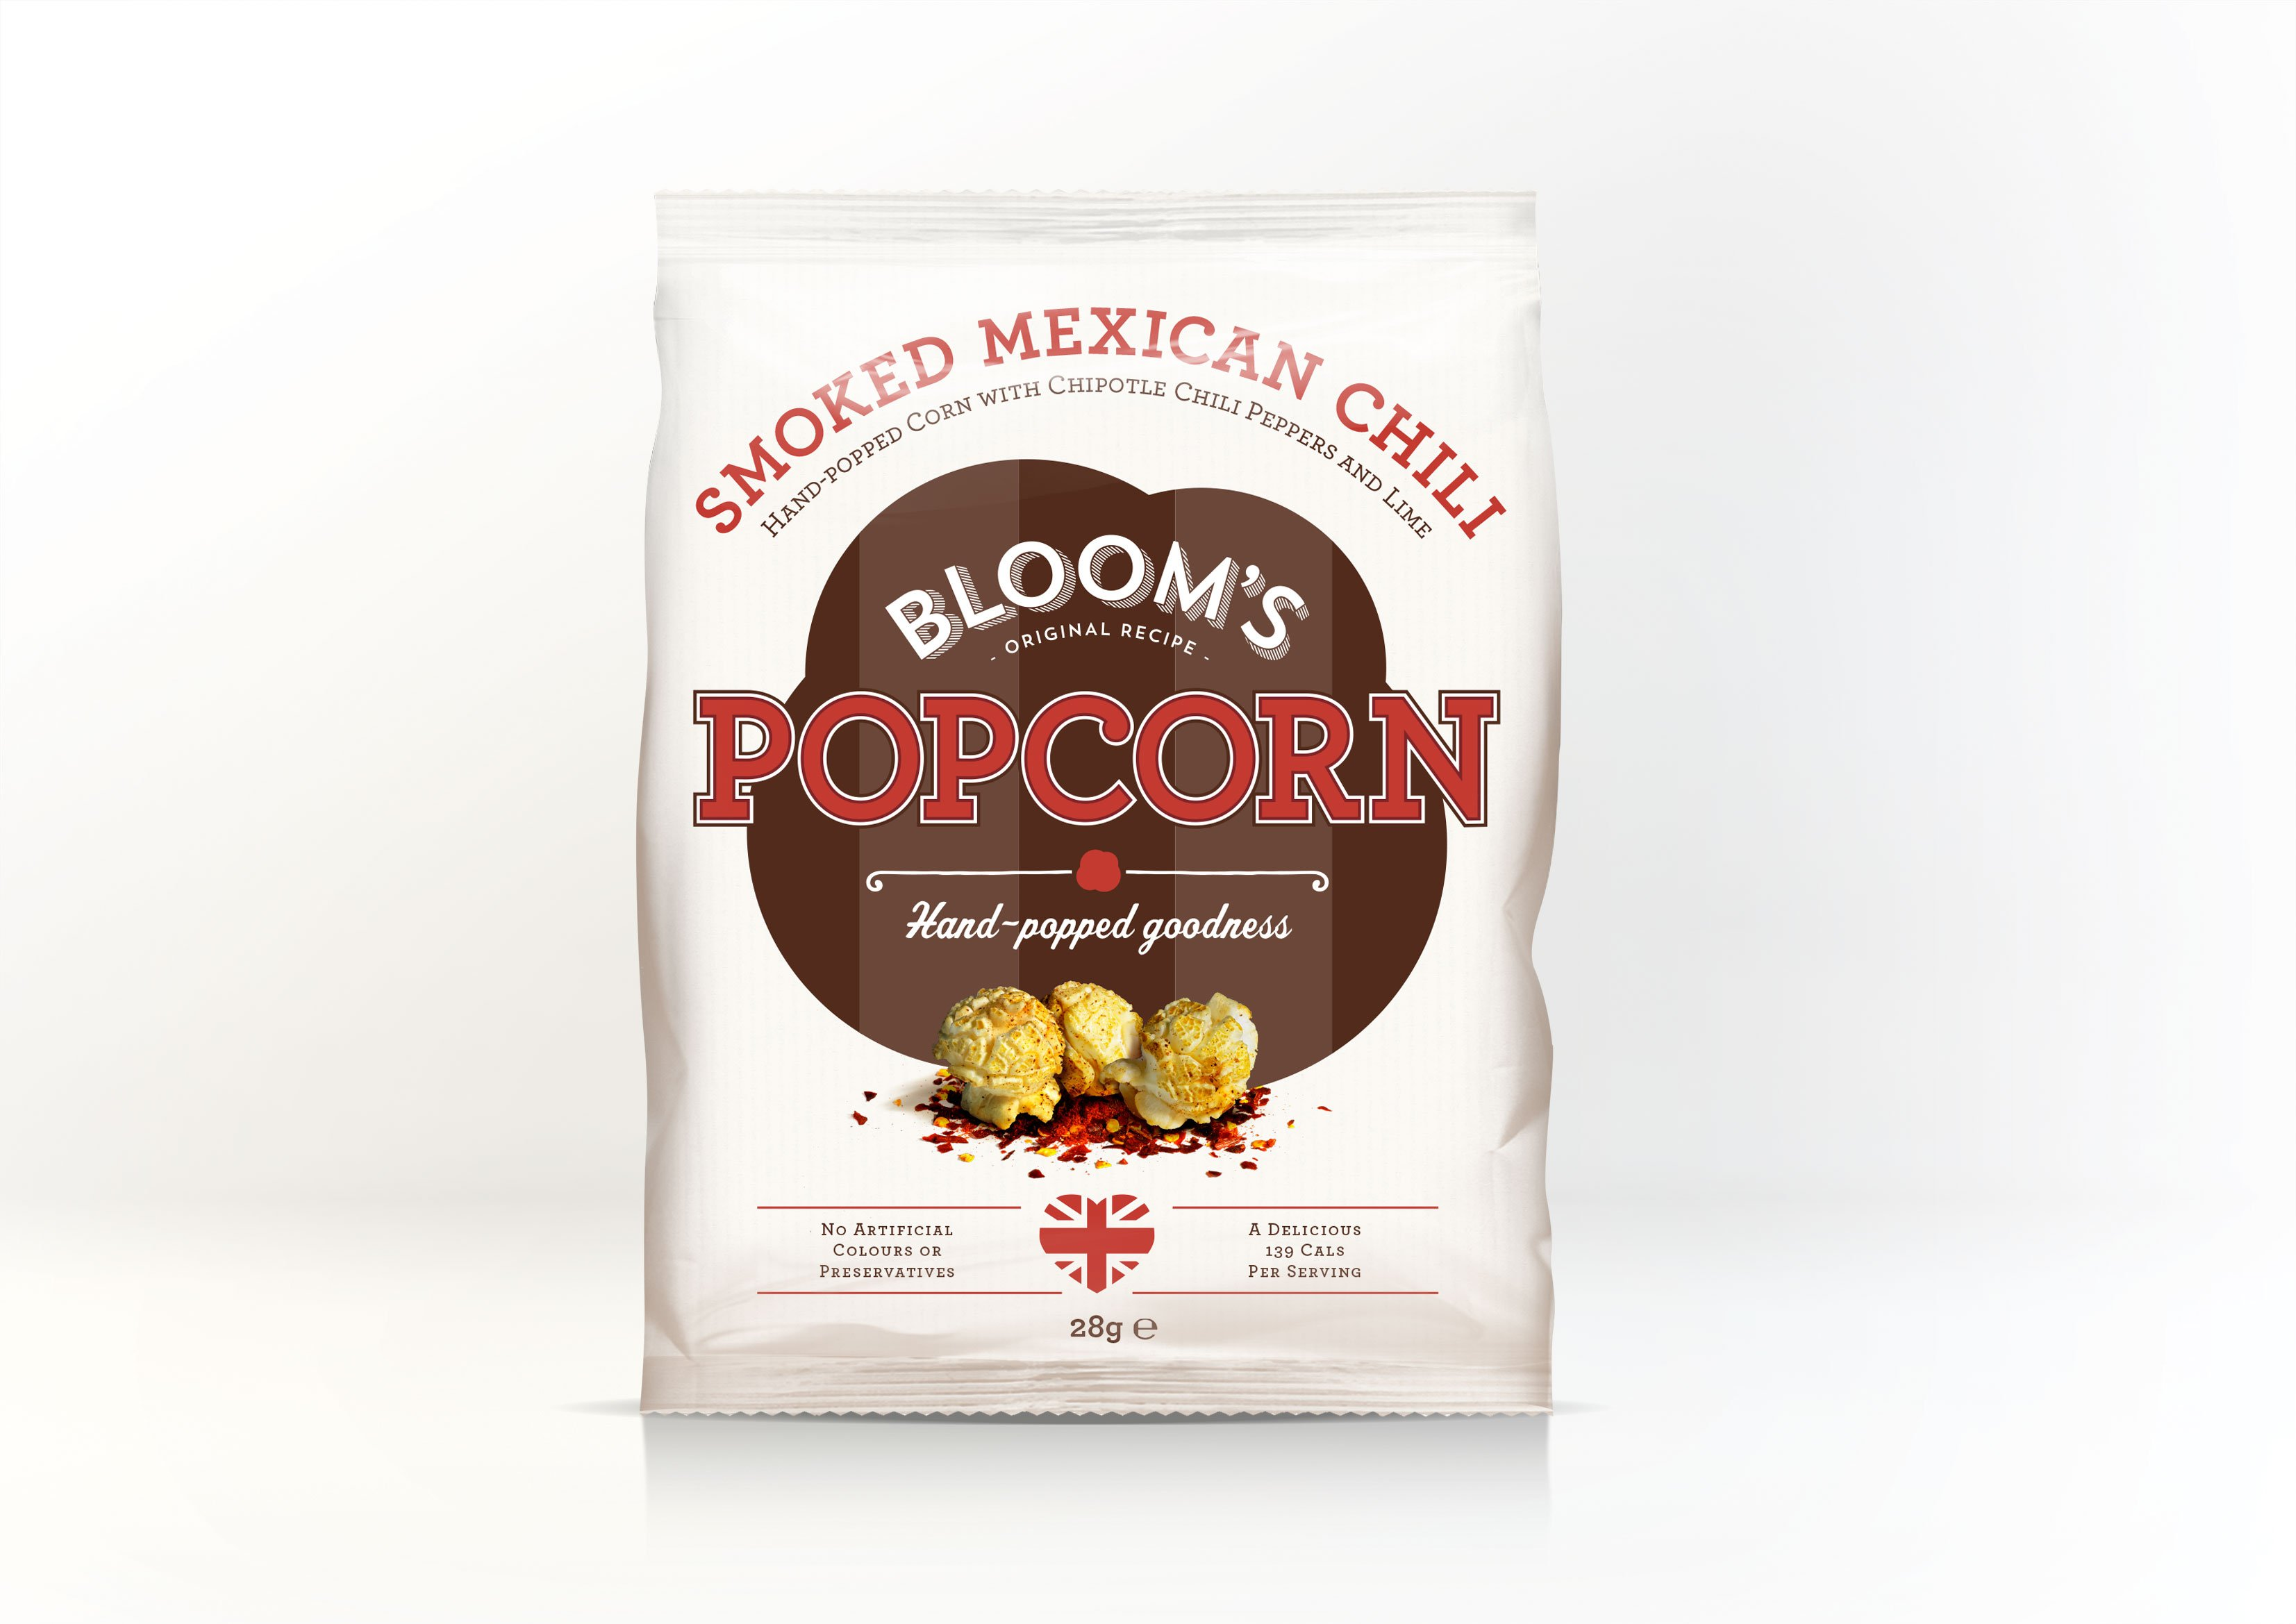 https://i2.wp.com/fatgayvegan.com/wp-content/uploads/2014/11/Blooms-Mexican-Chili-pack-shot-1.jpg?fit=3306%2C2339